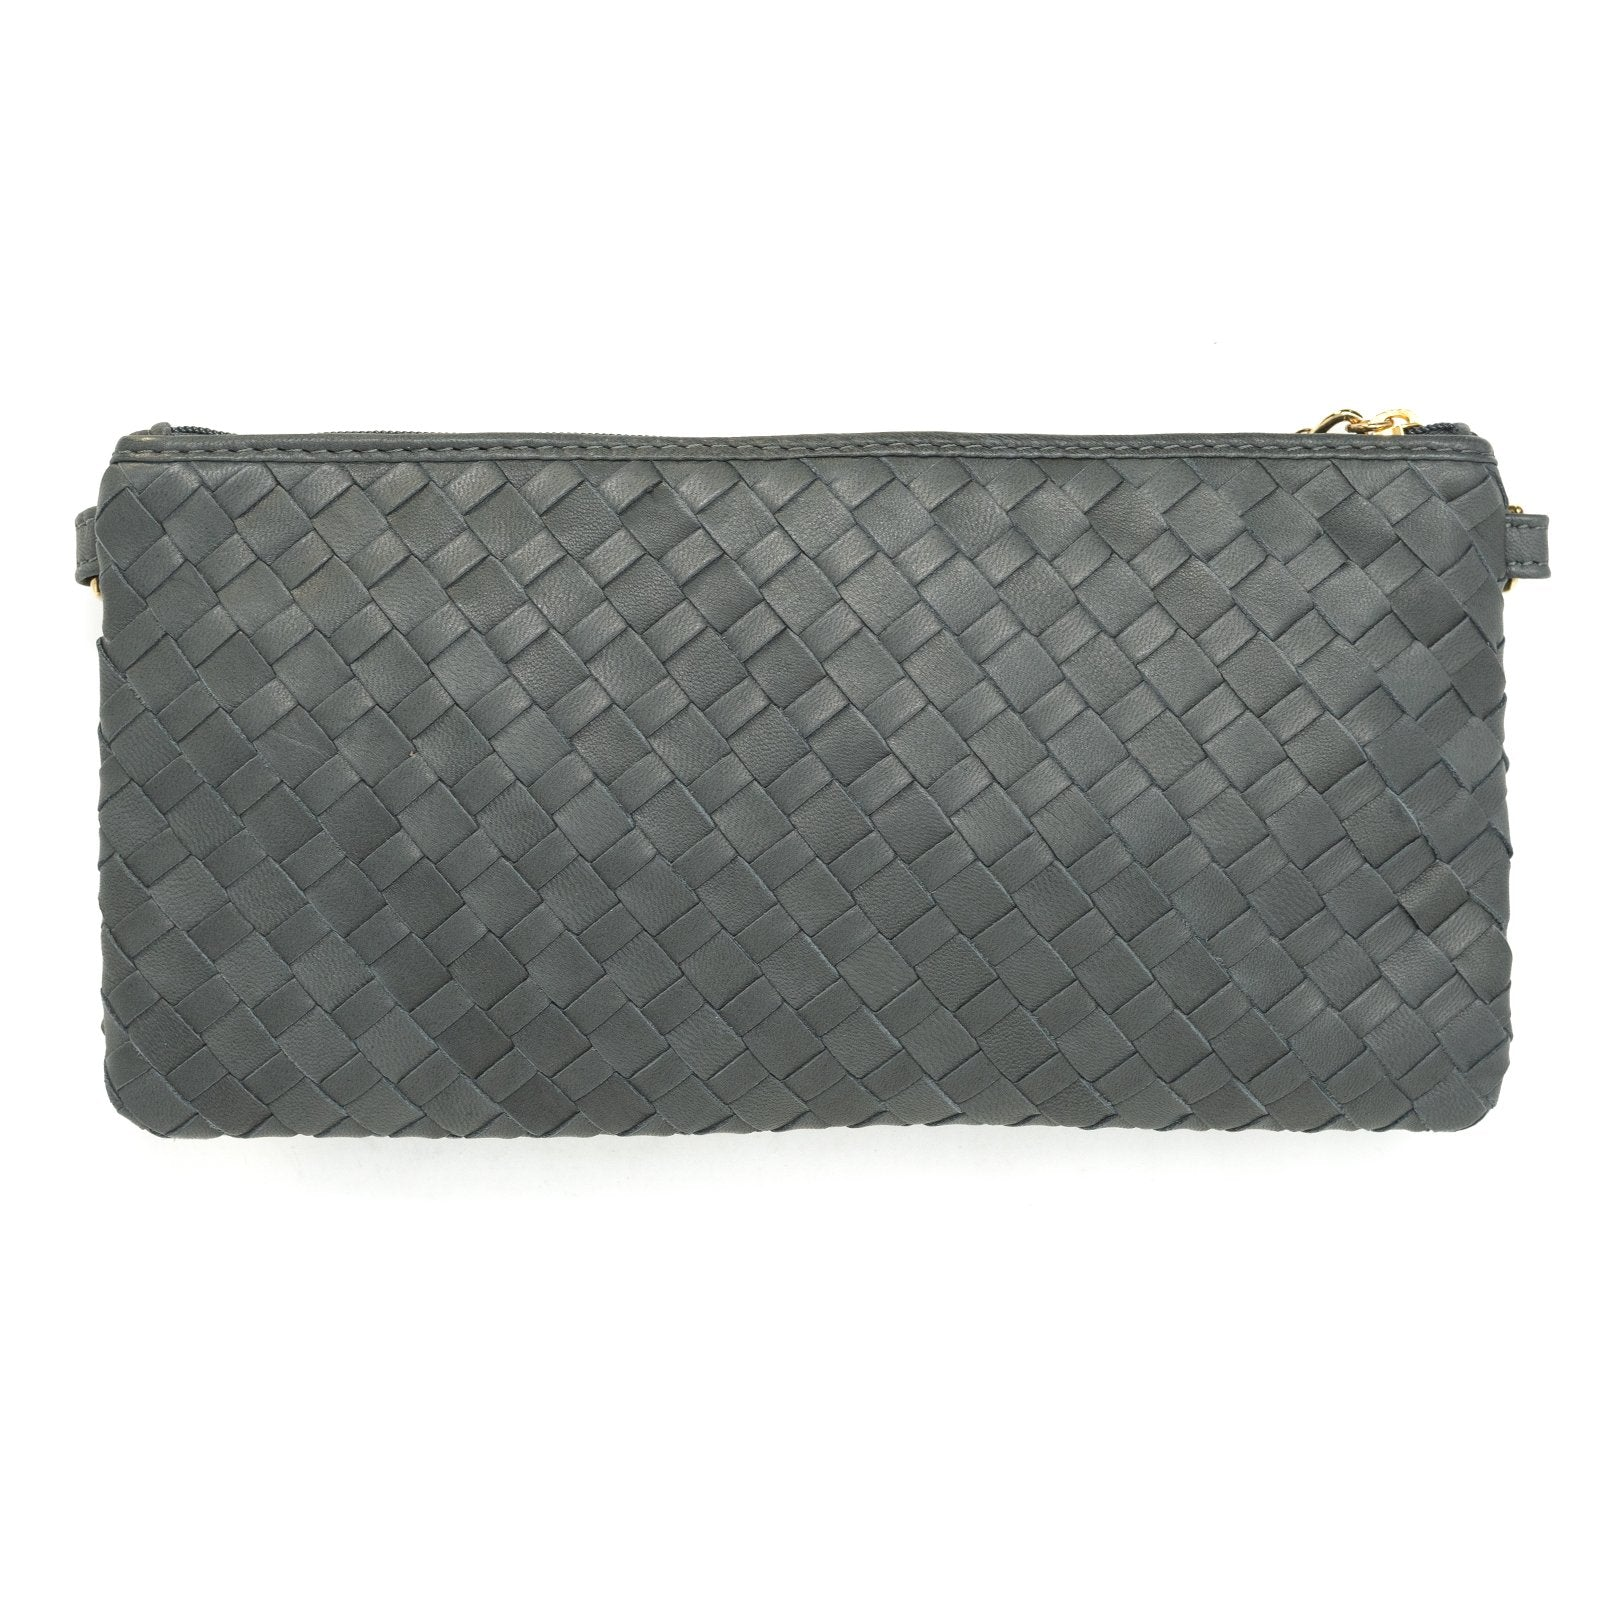 Women Intrecciato Leather Small Soft Clutch Grey Intreccio Quadro - Jennifer Tattanelli